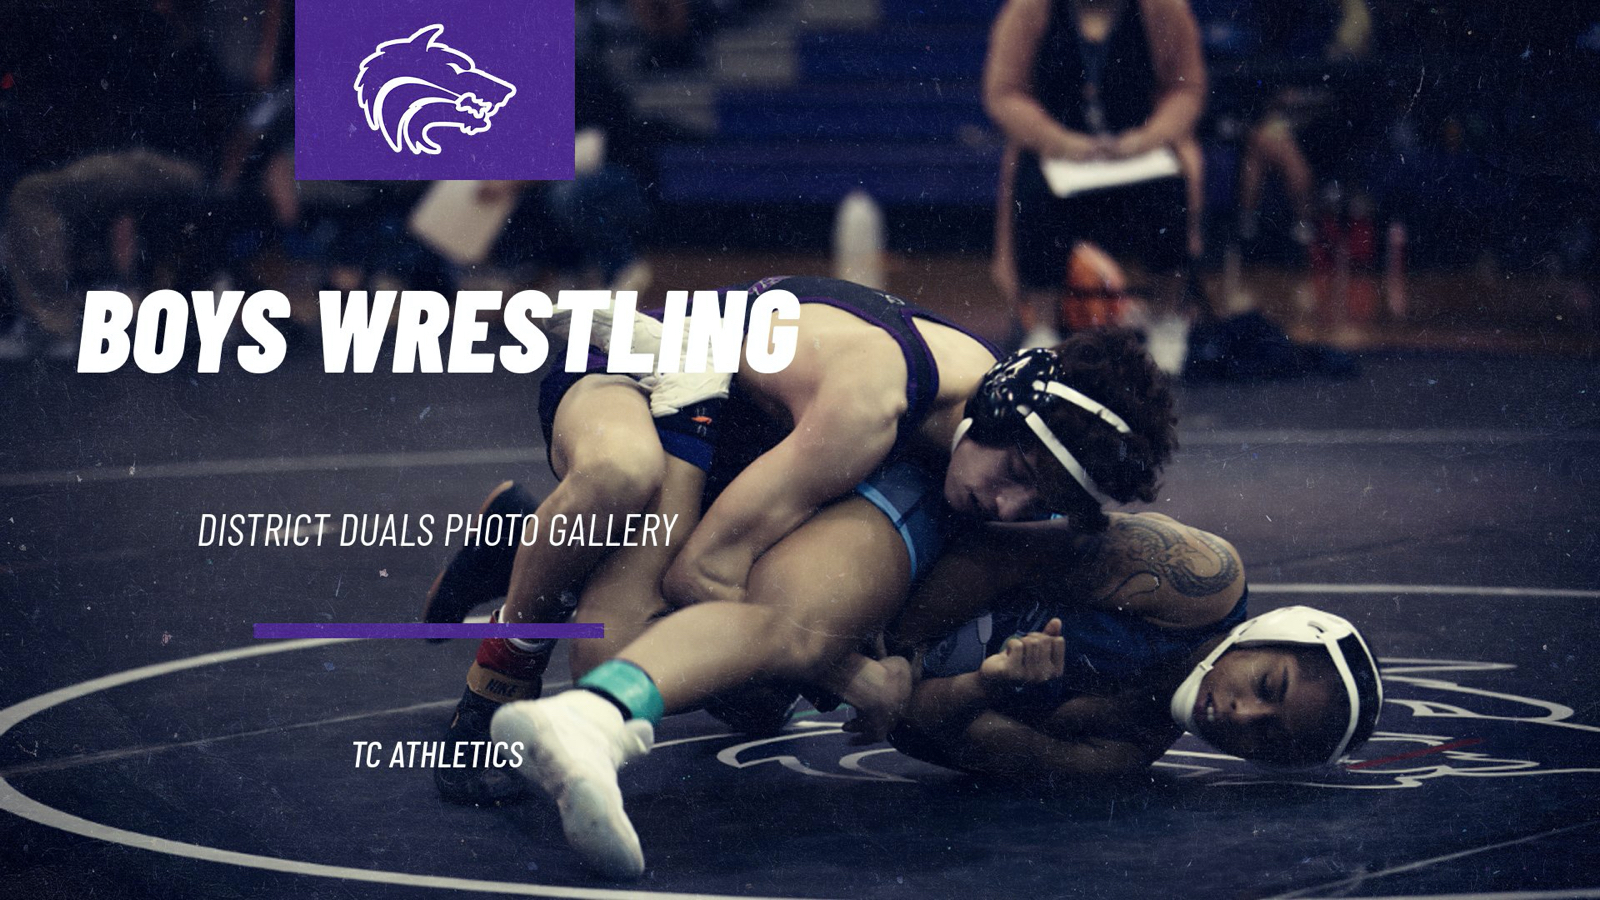 Boys Wrestling | District Duals Photo Gallery